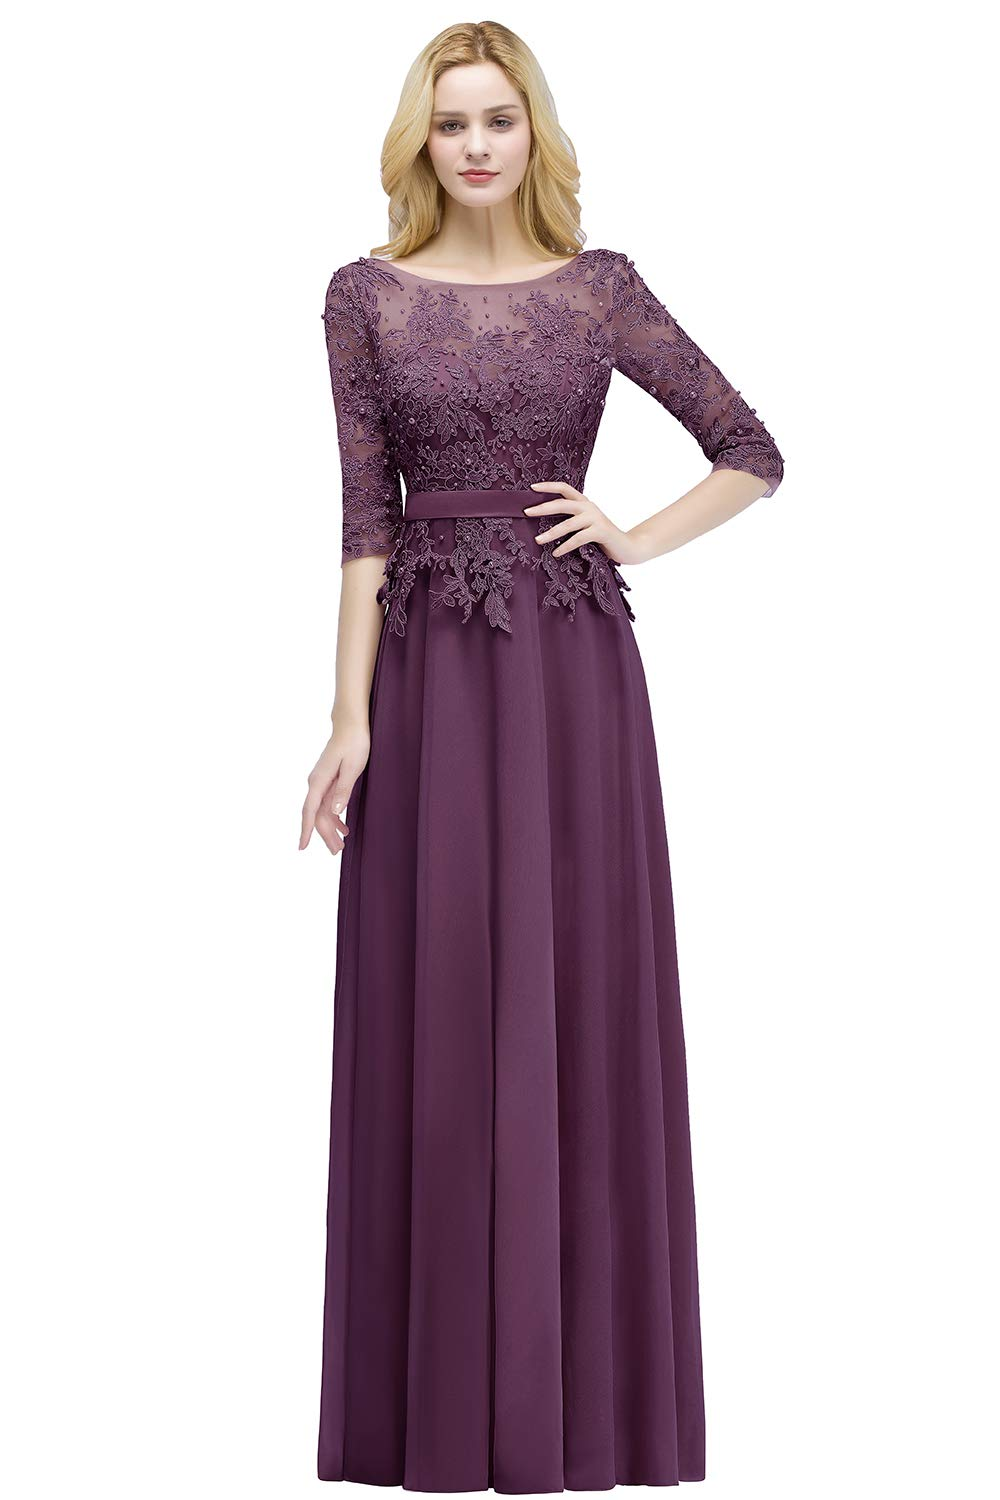 2790c71fcc8 Women Long Military Ball Gown Dress for Cocktail Grape Size 16